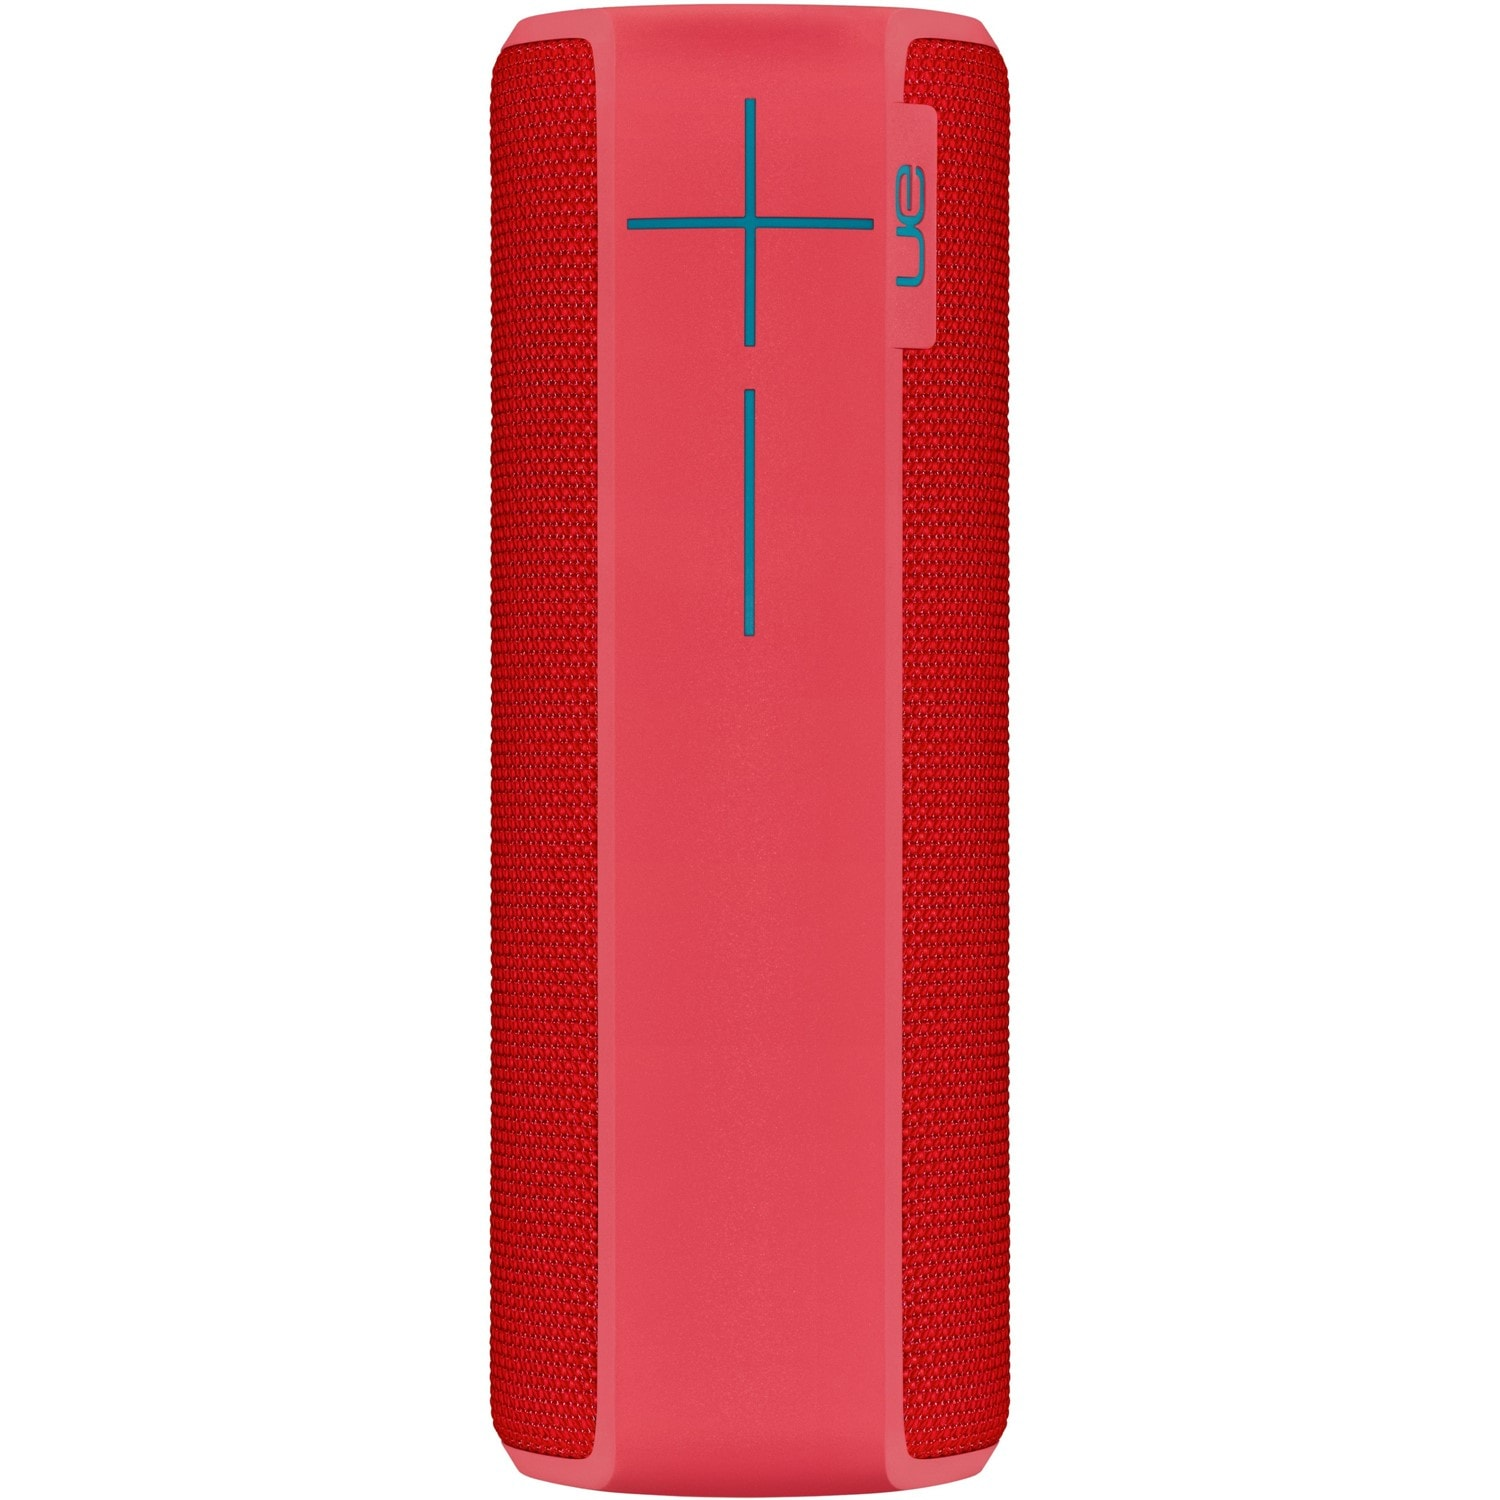 Ultimate Ears BOOM 2 Speaker System - Wireless Speaker(s) - Portable -  Battery Rechargeable - Red